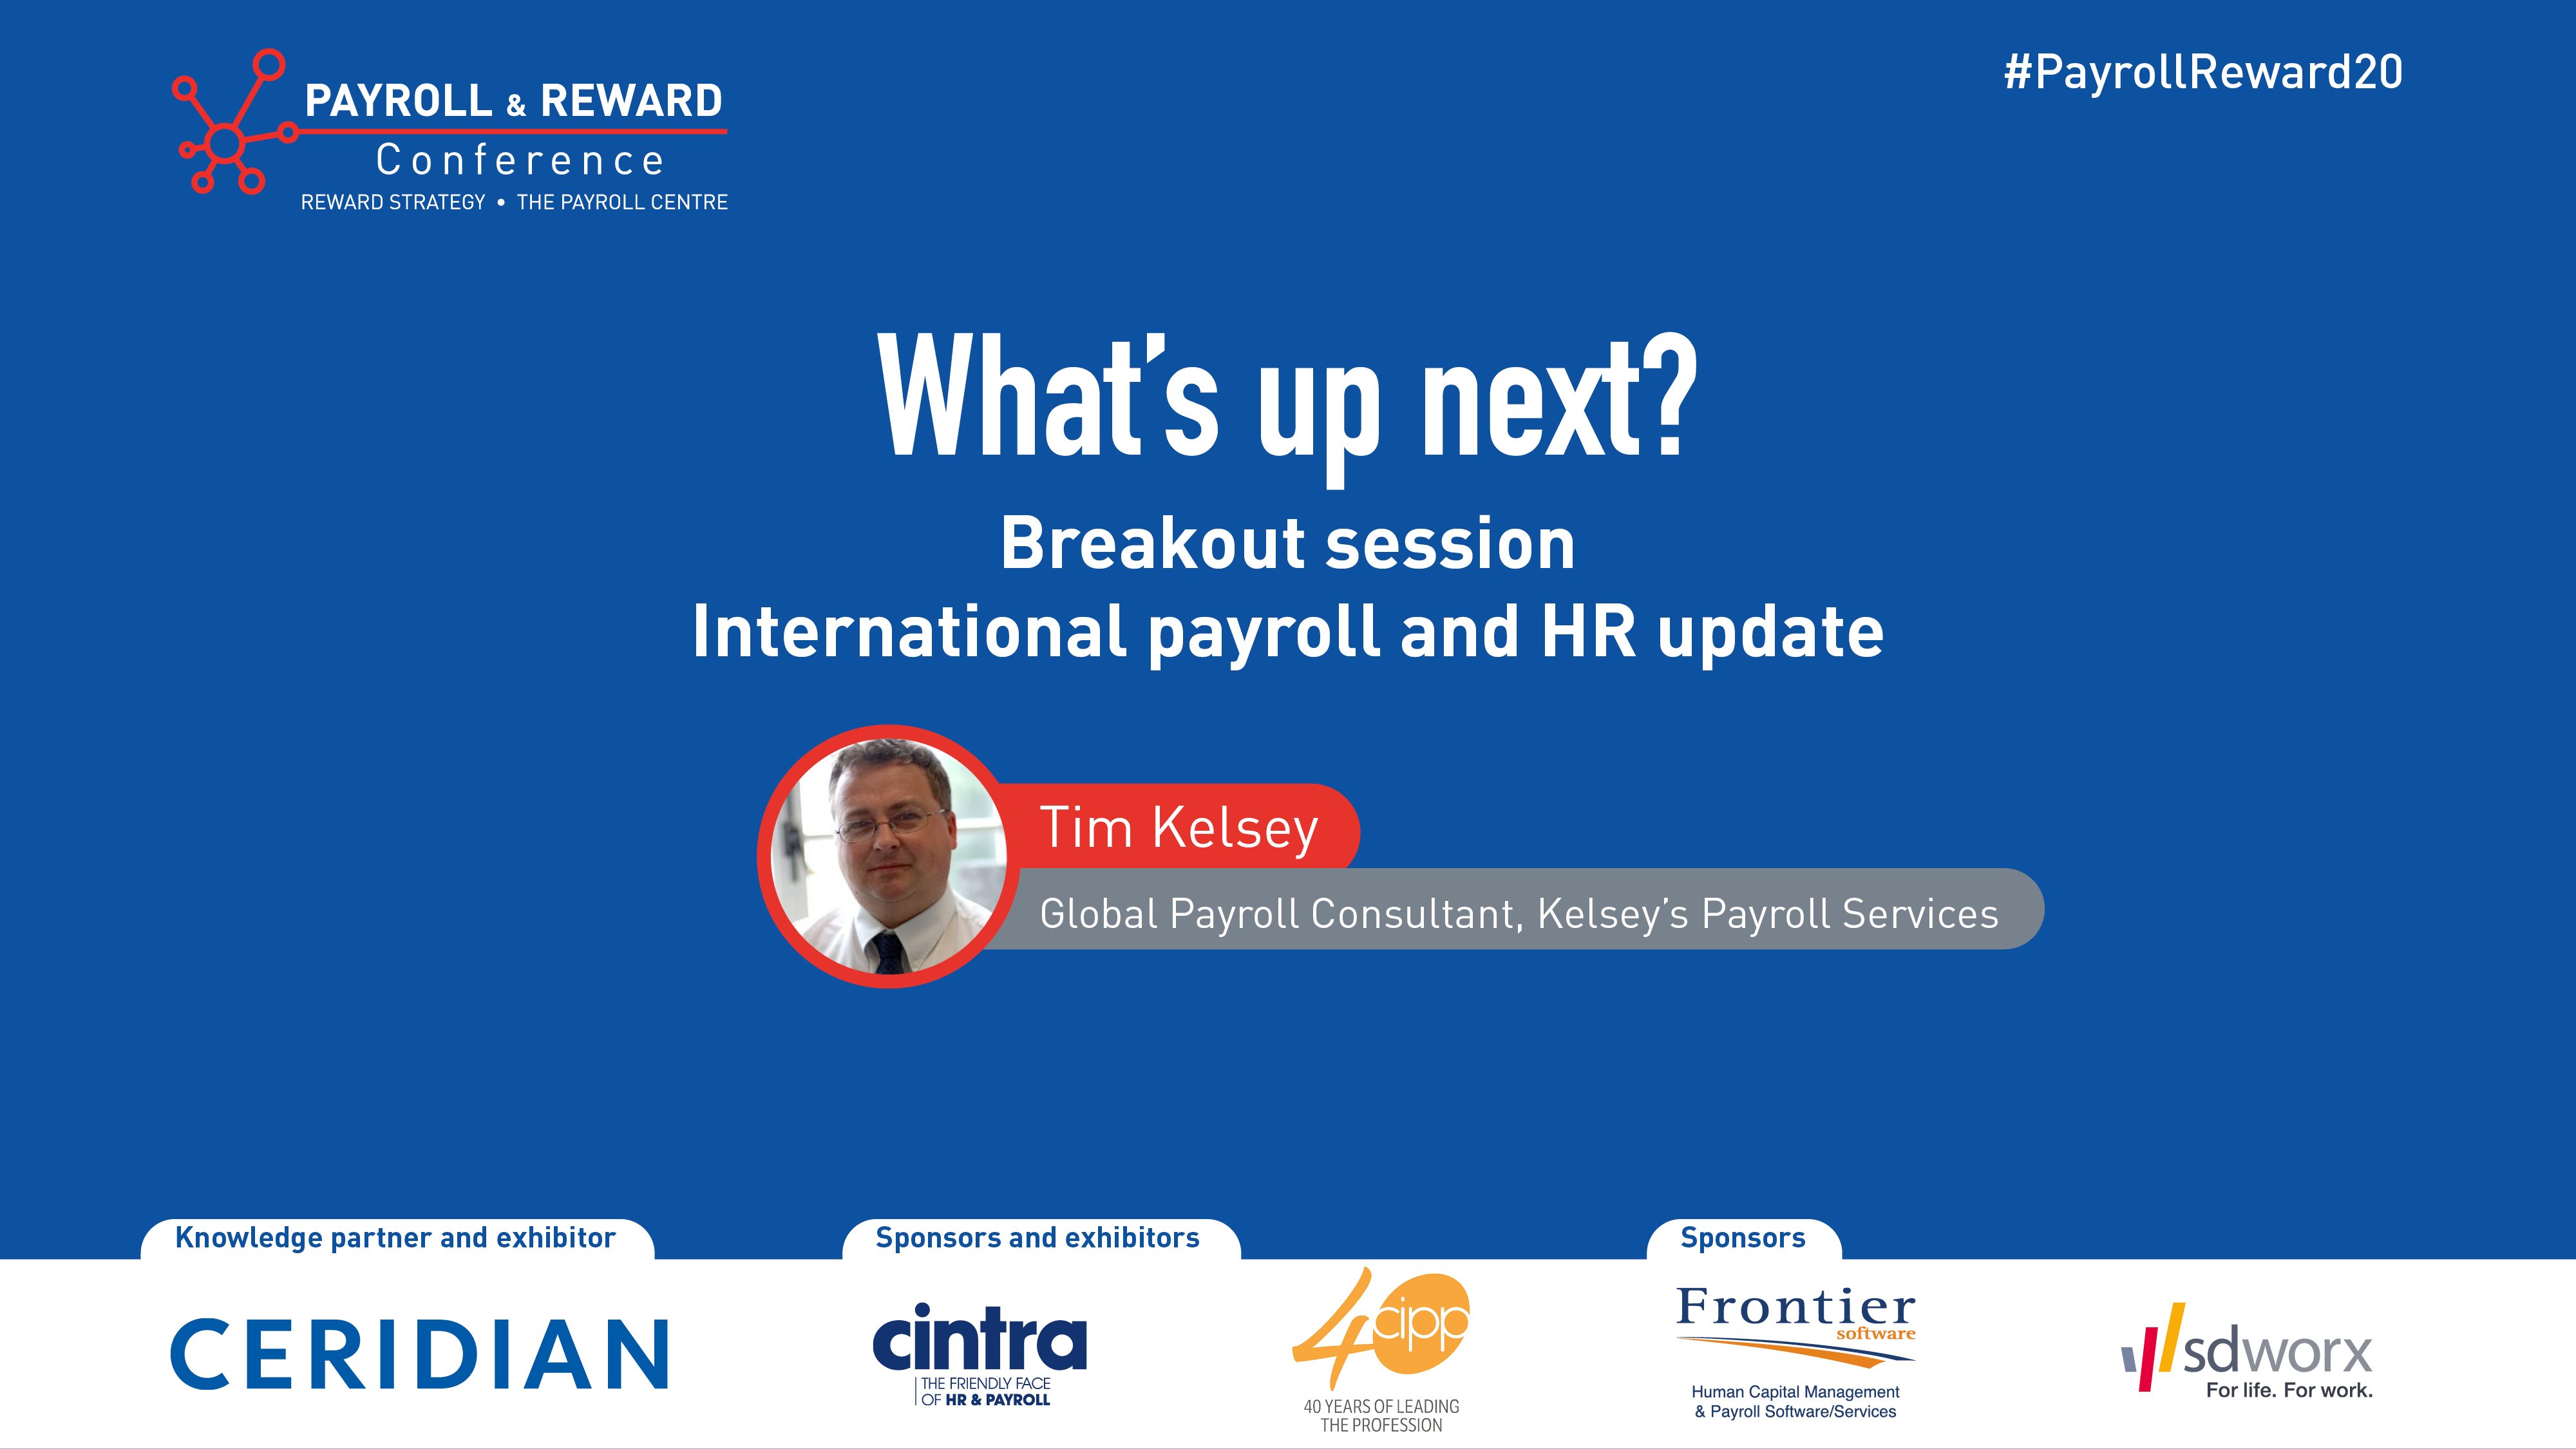 Payroll & Reward Conference - International payroll and HR was Tim Kelsey, Global Payroll Consultant, Kelsey's Payroll Services